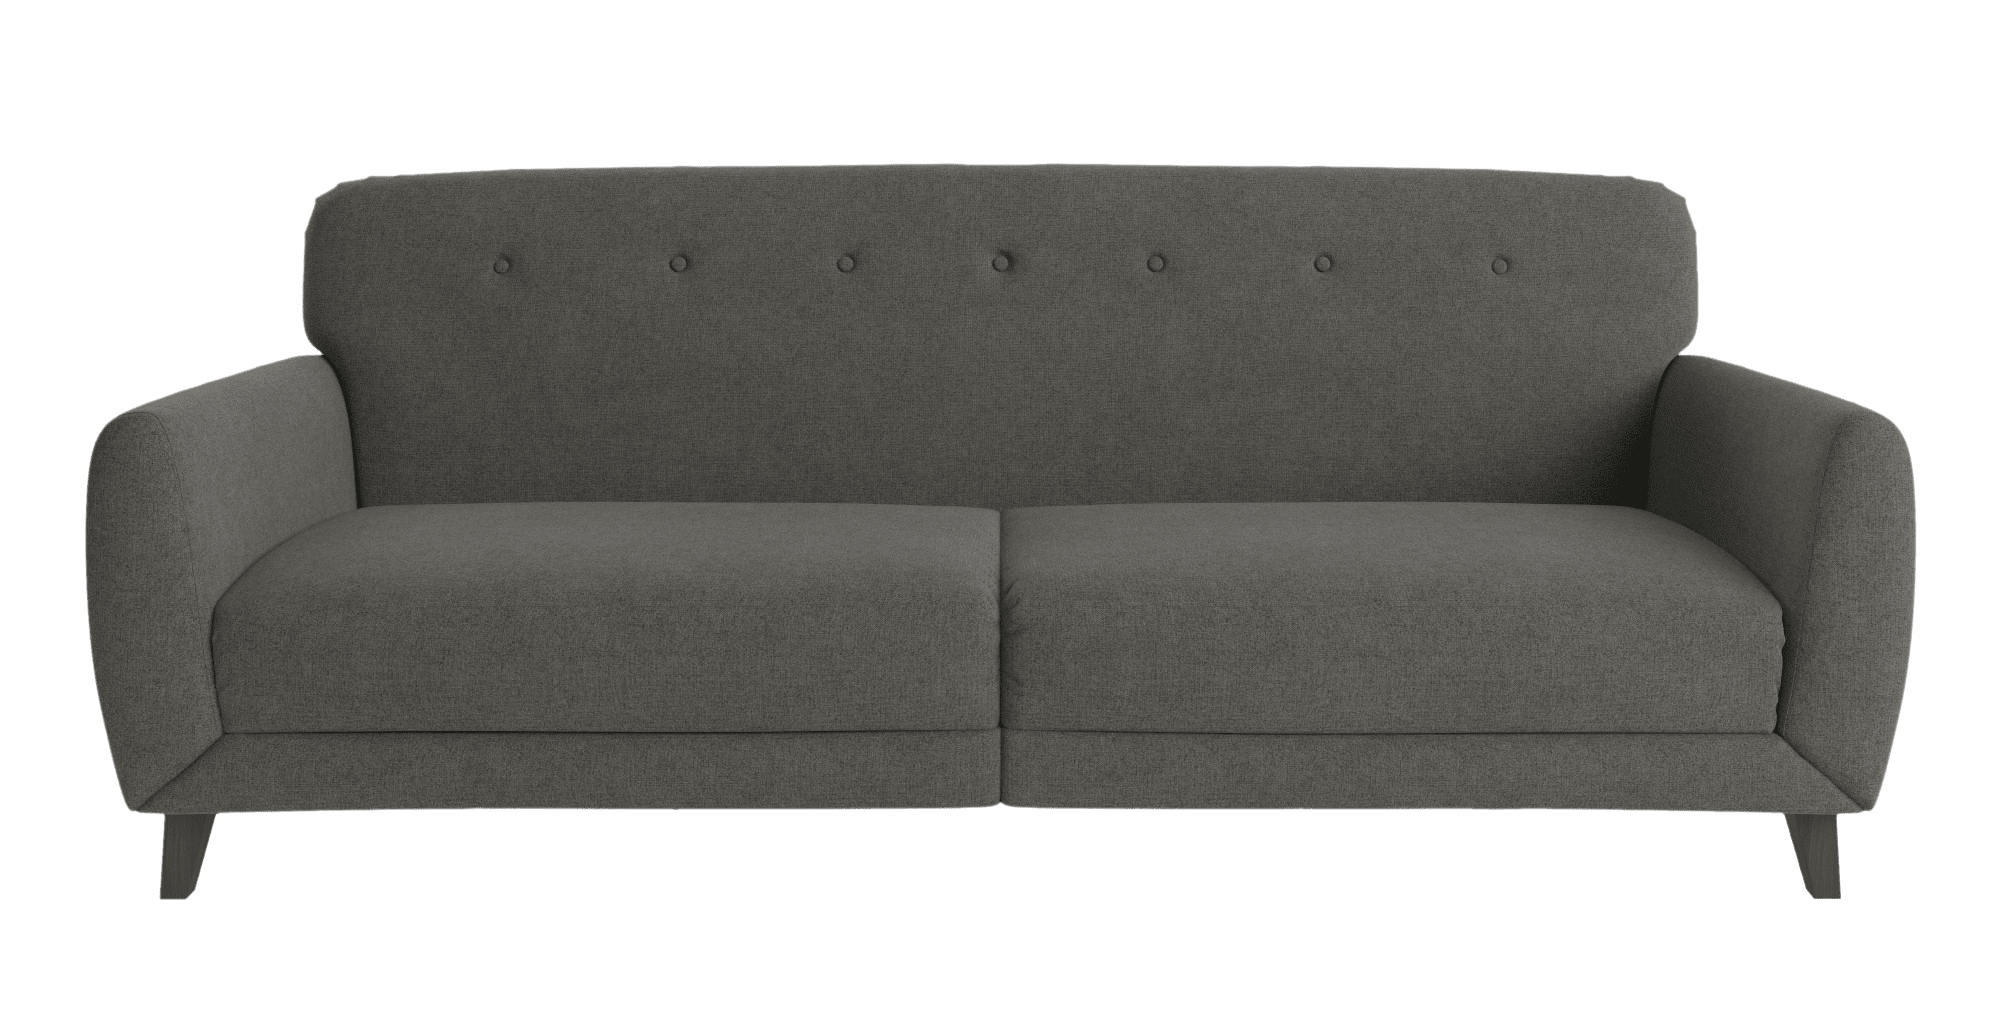 Sofa Set Images Free Download Sofa Png Images Transparent Free Download Pngmart